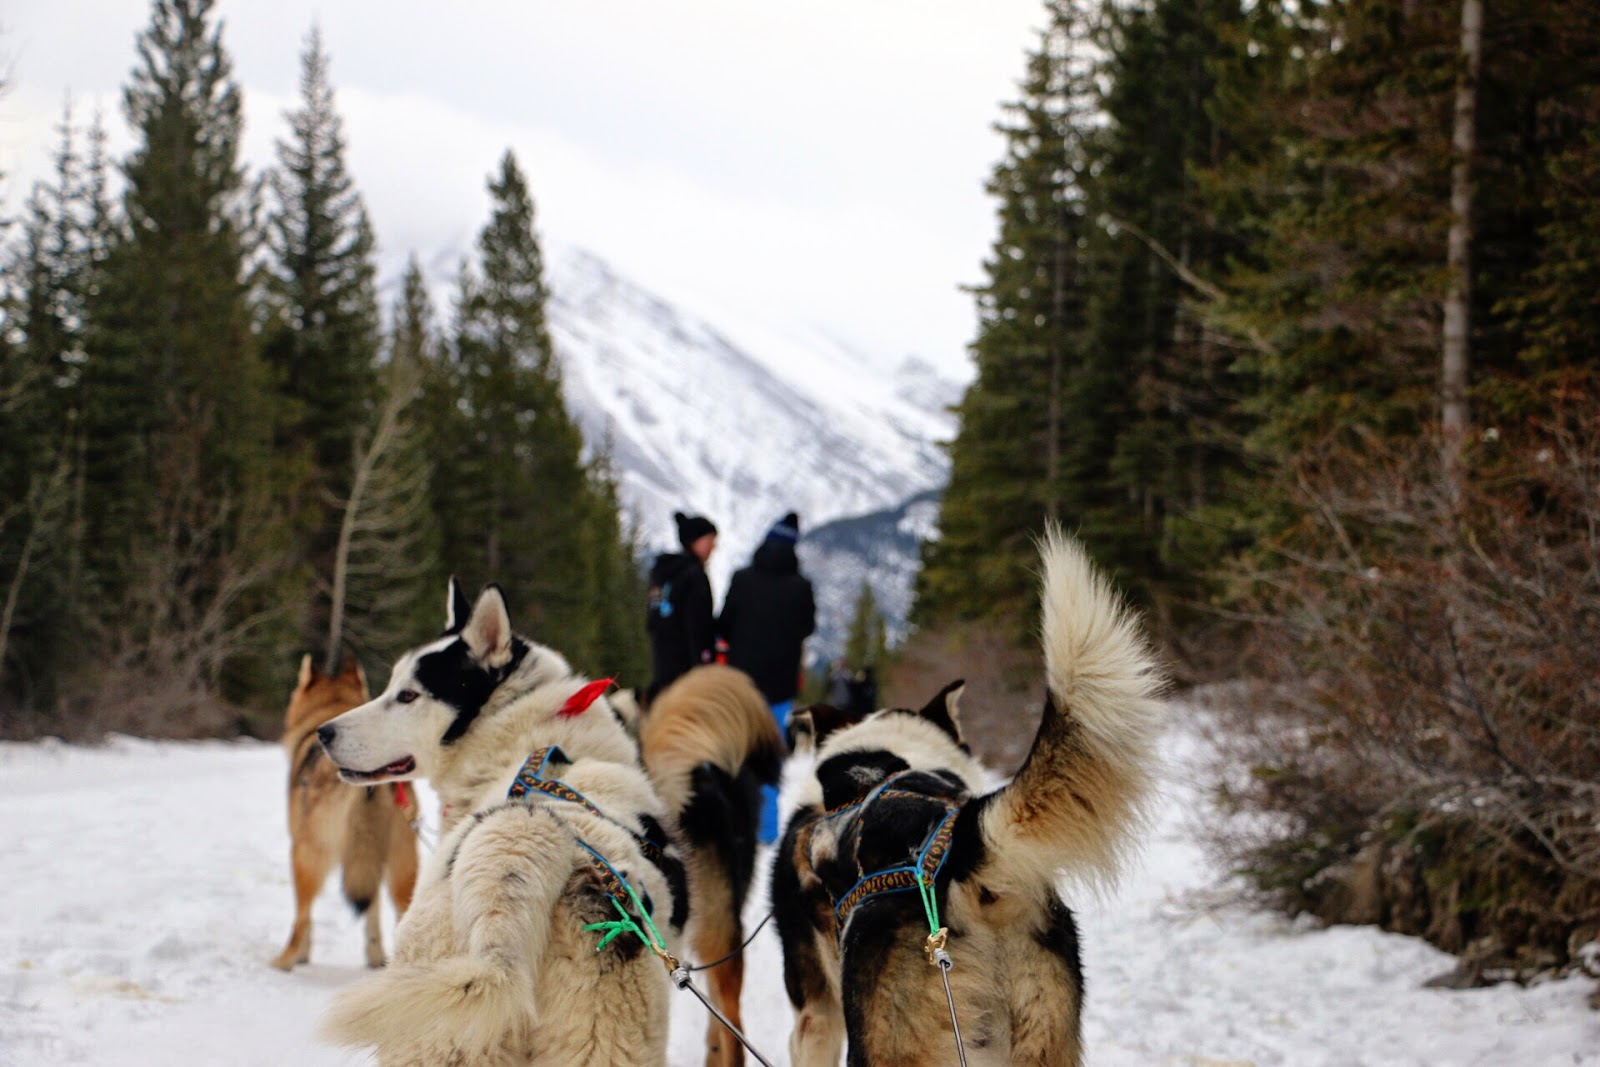 Dog Sledding in Banff National Park, Alberta Canada by Jessica Mack (aka SweetDivergence)